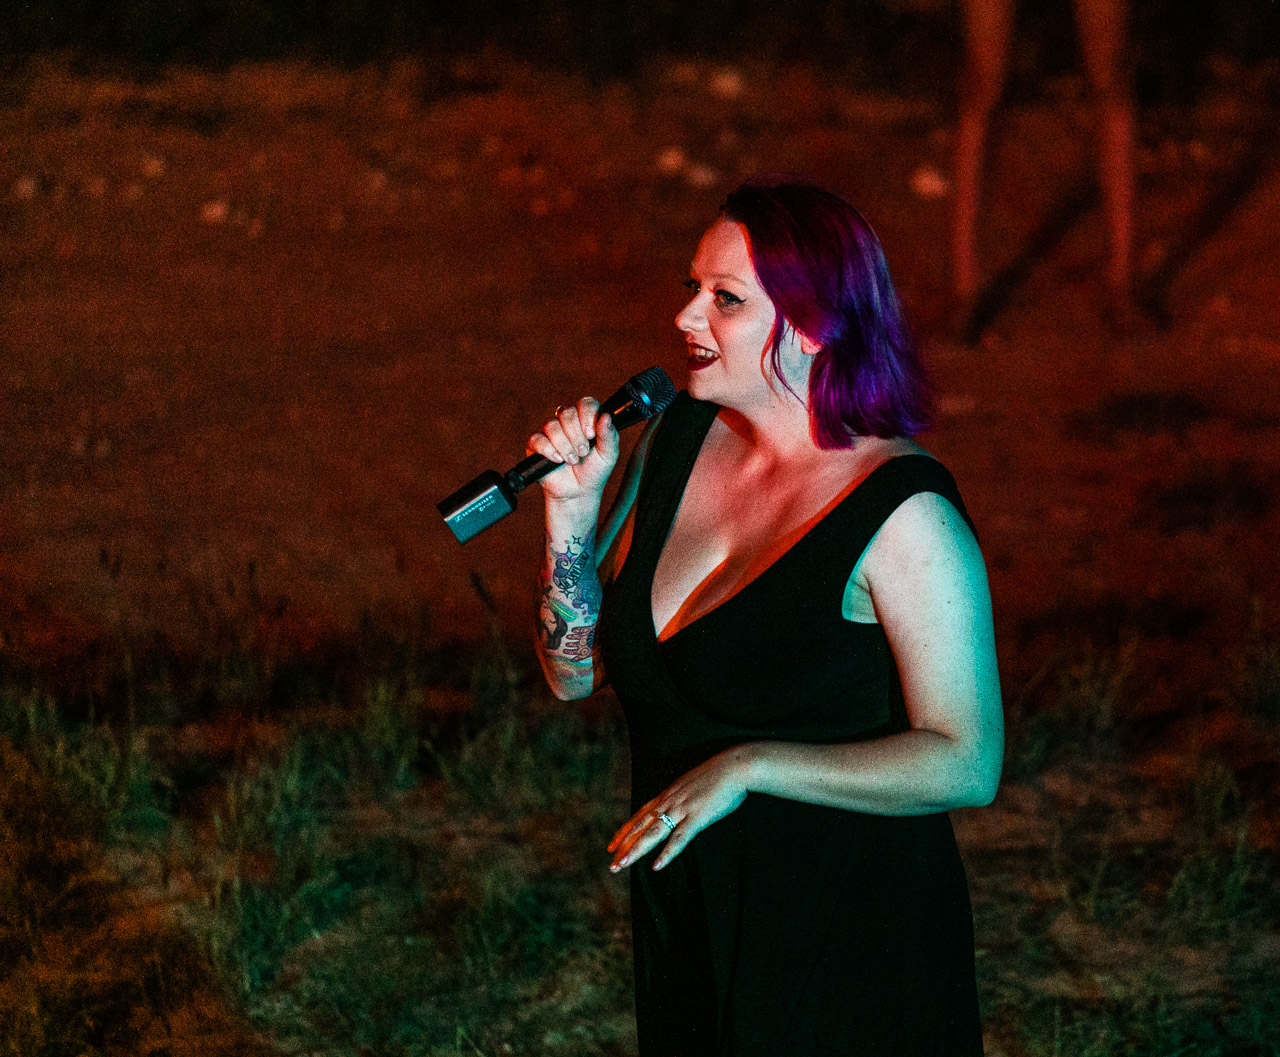 Australian opera singer Aria Scarlett at the Gascoyne in May rehearsals at Warroora Station, WA